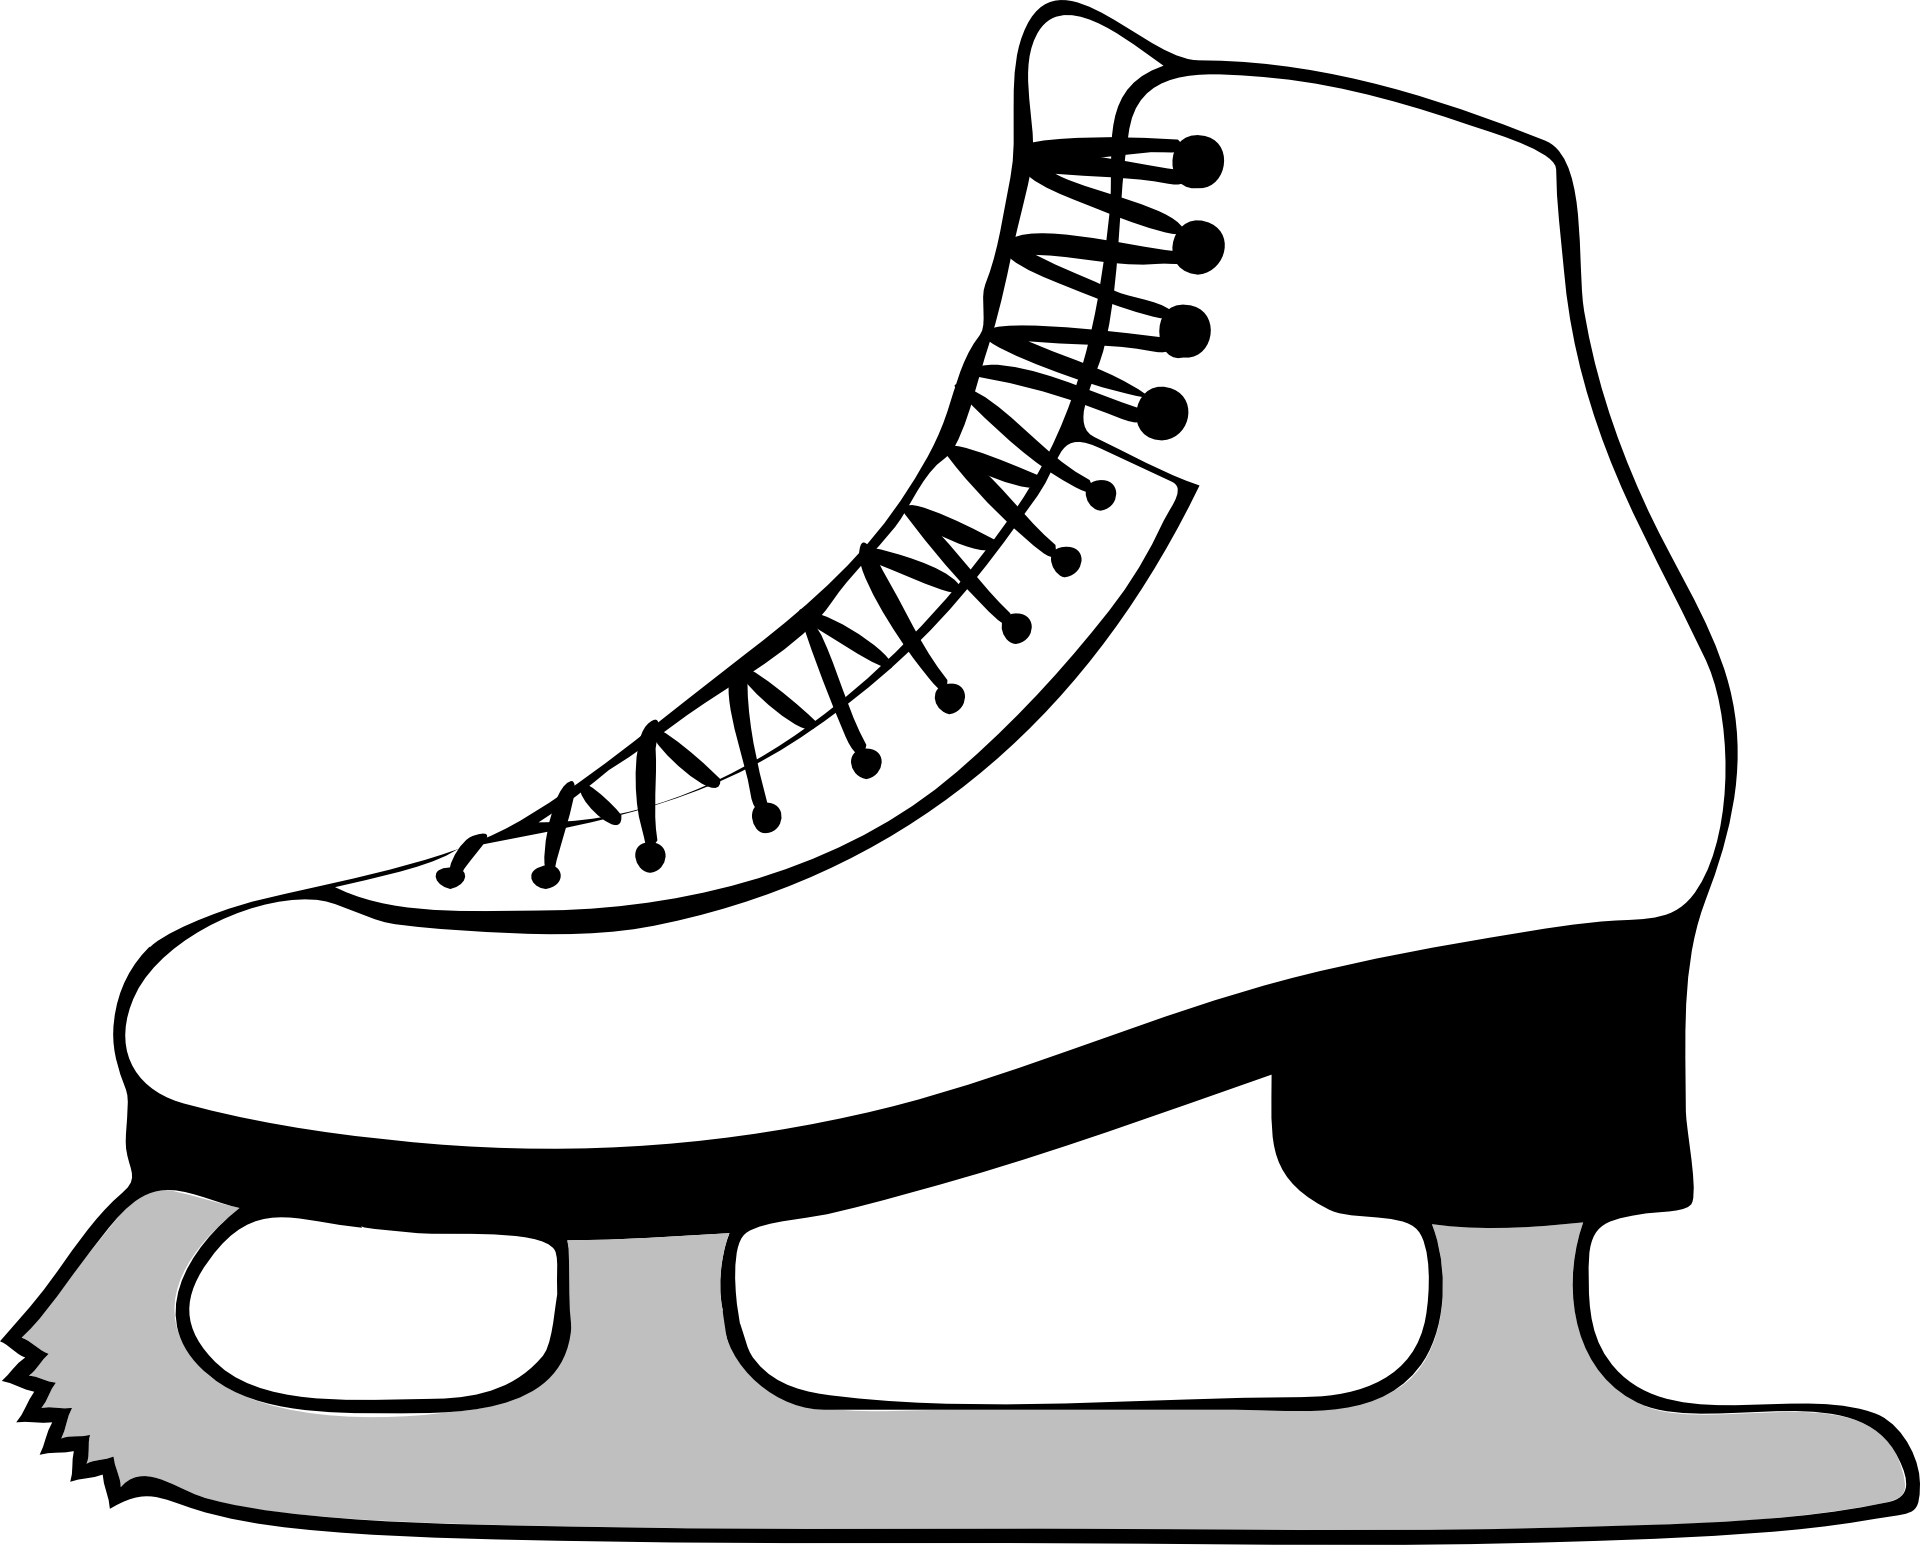 image regarding Hockey Skate Template Free Printable titled Hockey Skate Drawing No cost down load simplest Hockey Skate